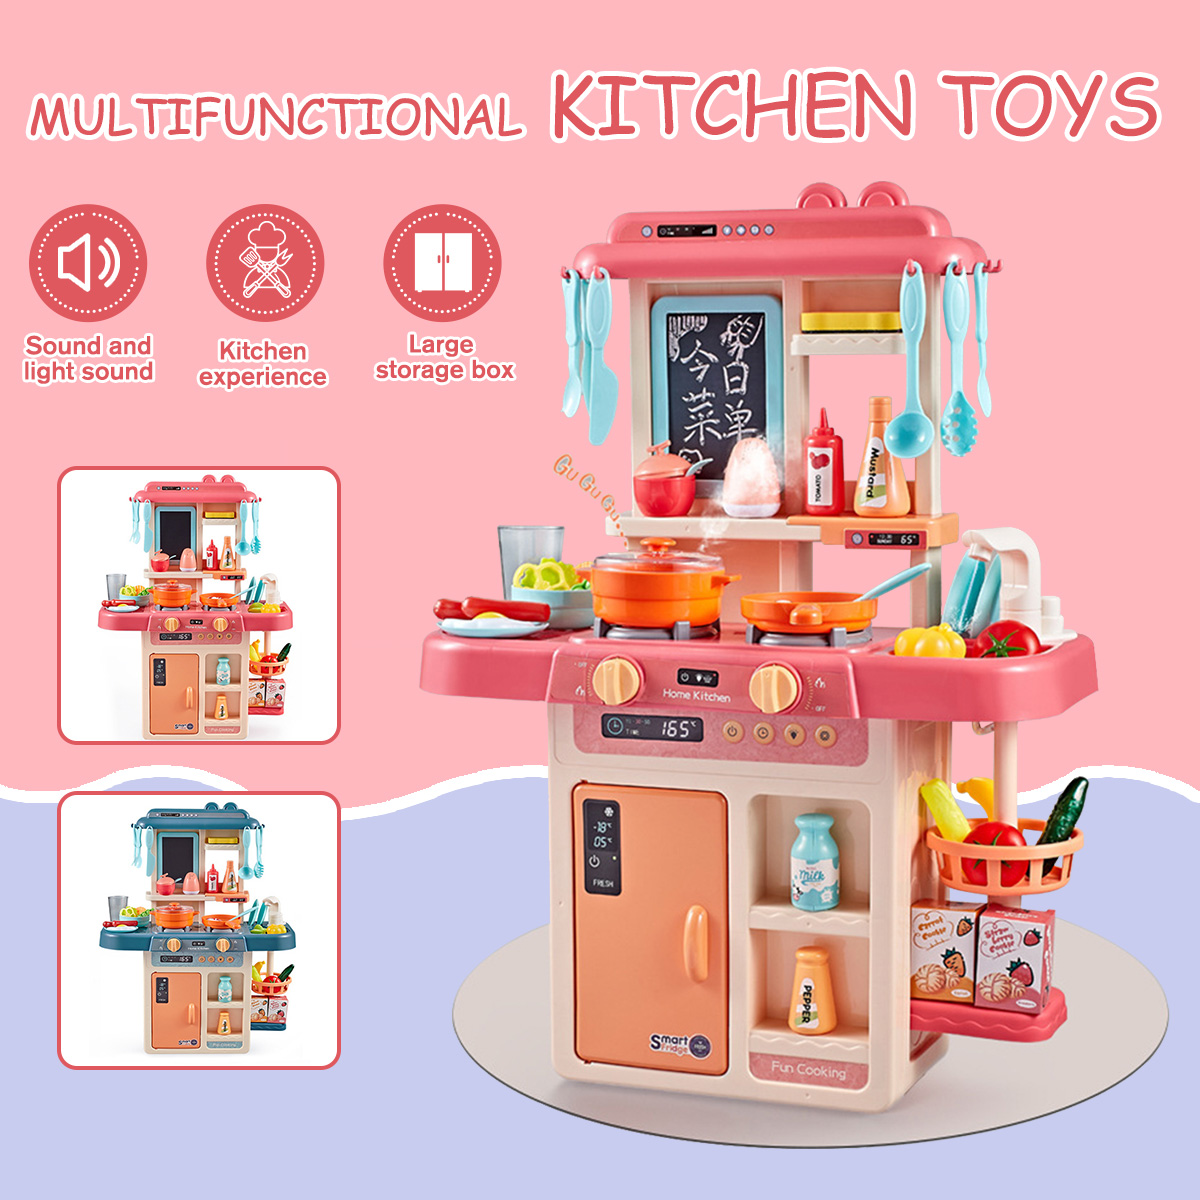 42Pcs Kids <font><b>Kitchen</b></font> <font><b>Toys</b></font> Simulation детская кухня Spray Water Dinnerware Pretend Play Cooking Table <font><b>Kitchen</b></font> <font><b>Set</b></font> for Kids Gifts image